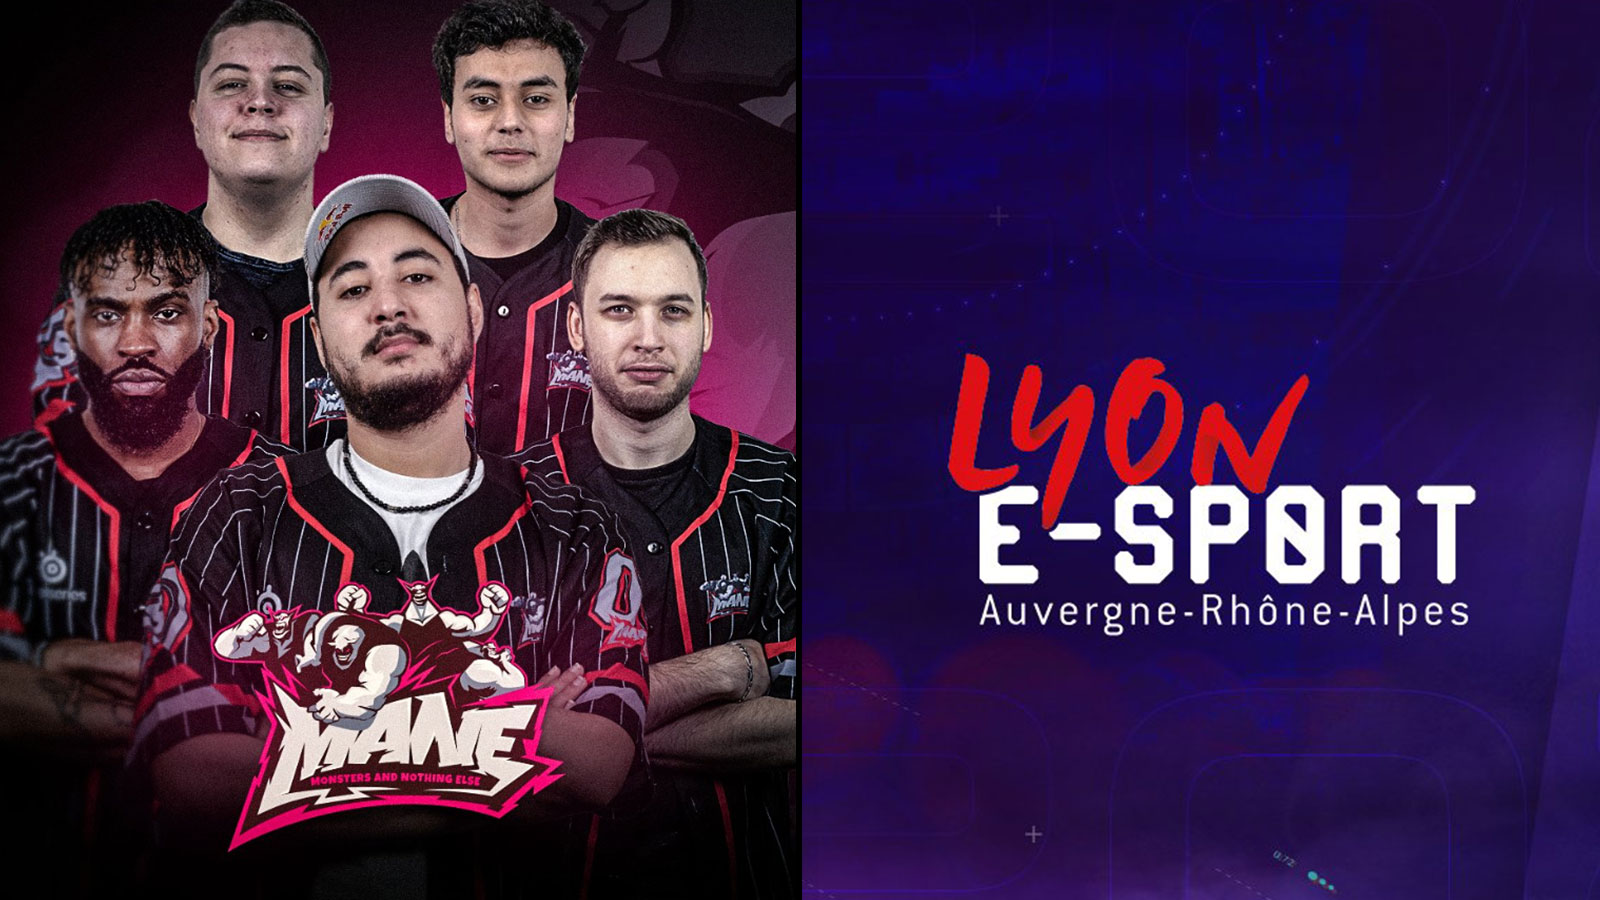 Les MANE disputeront el tournoi League of Legends de la Lyon e-Sport